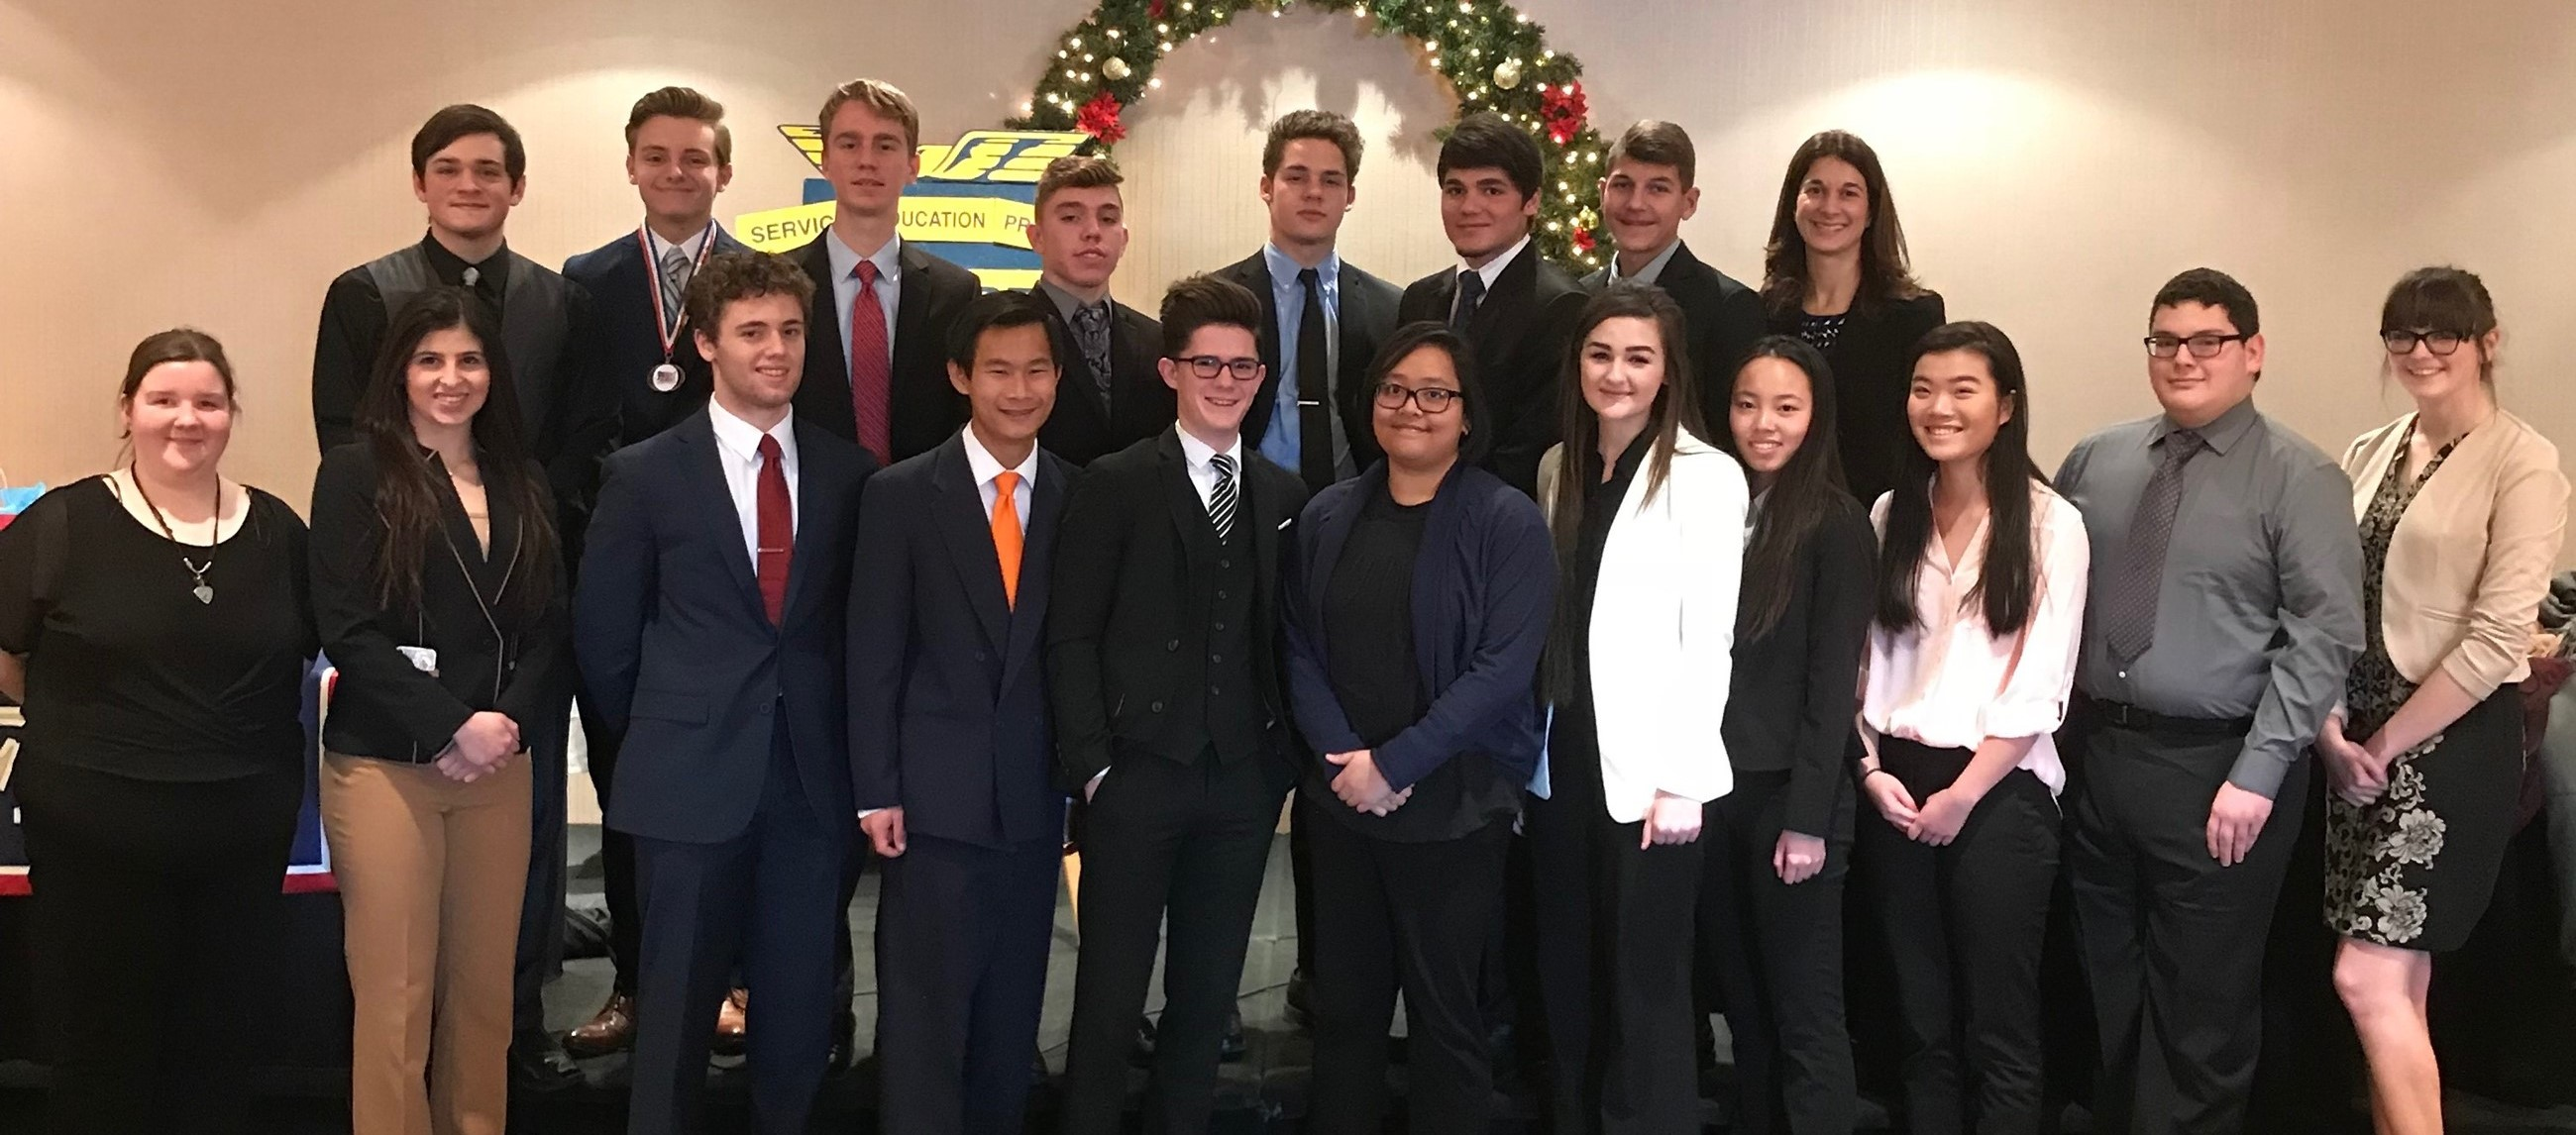 Eighteen students and their sponsor competing at Future Business Leaders of America Regional Competition